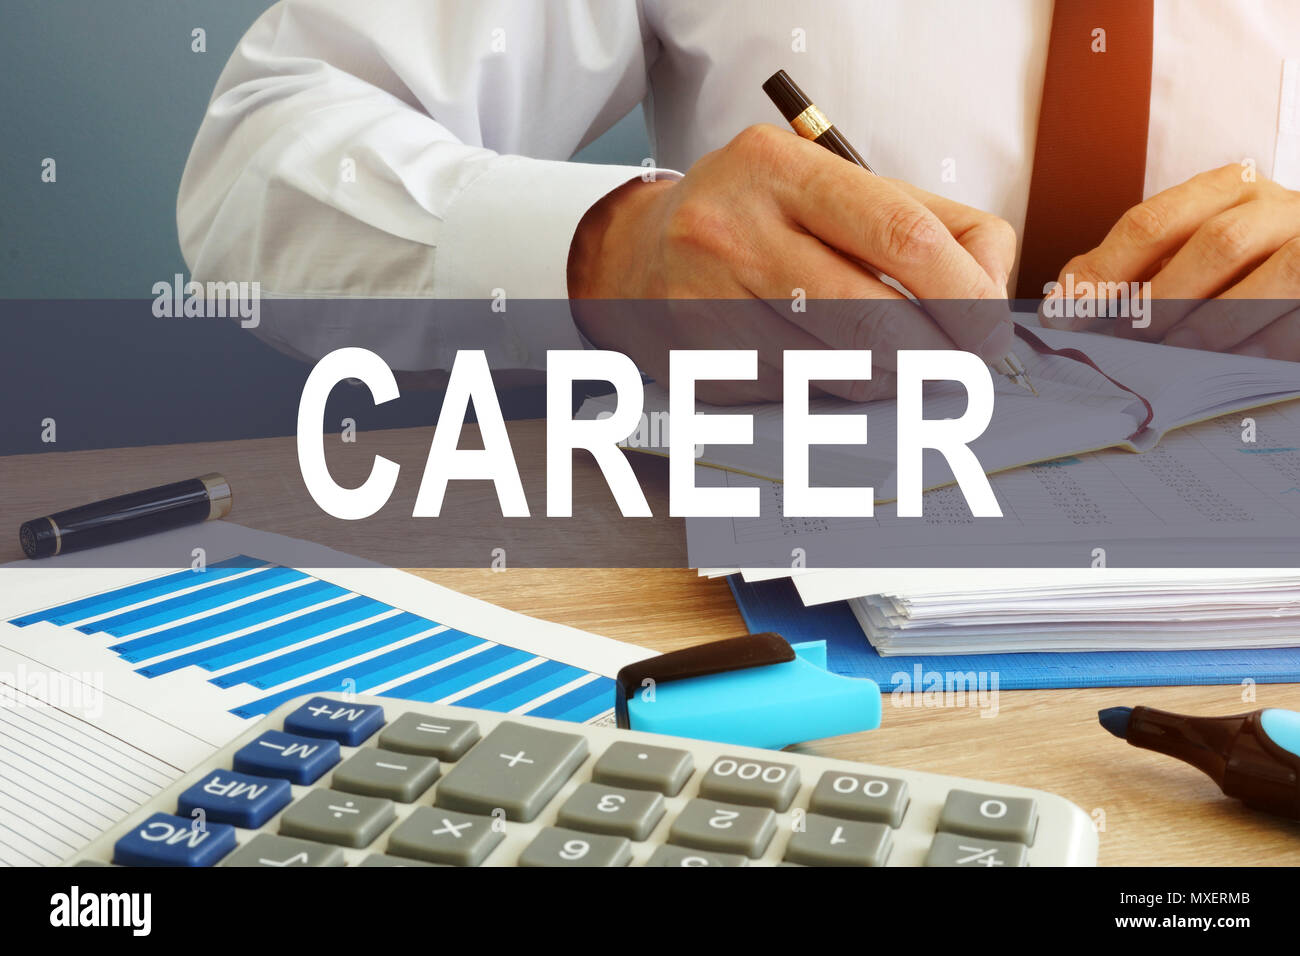 Career concept. Businessman is working with documents. - Stock Image